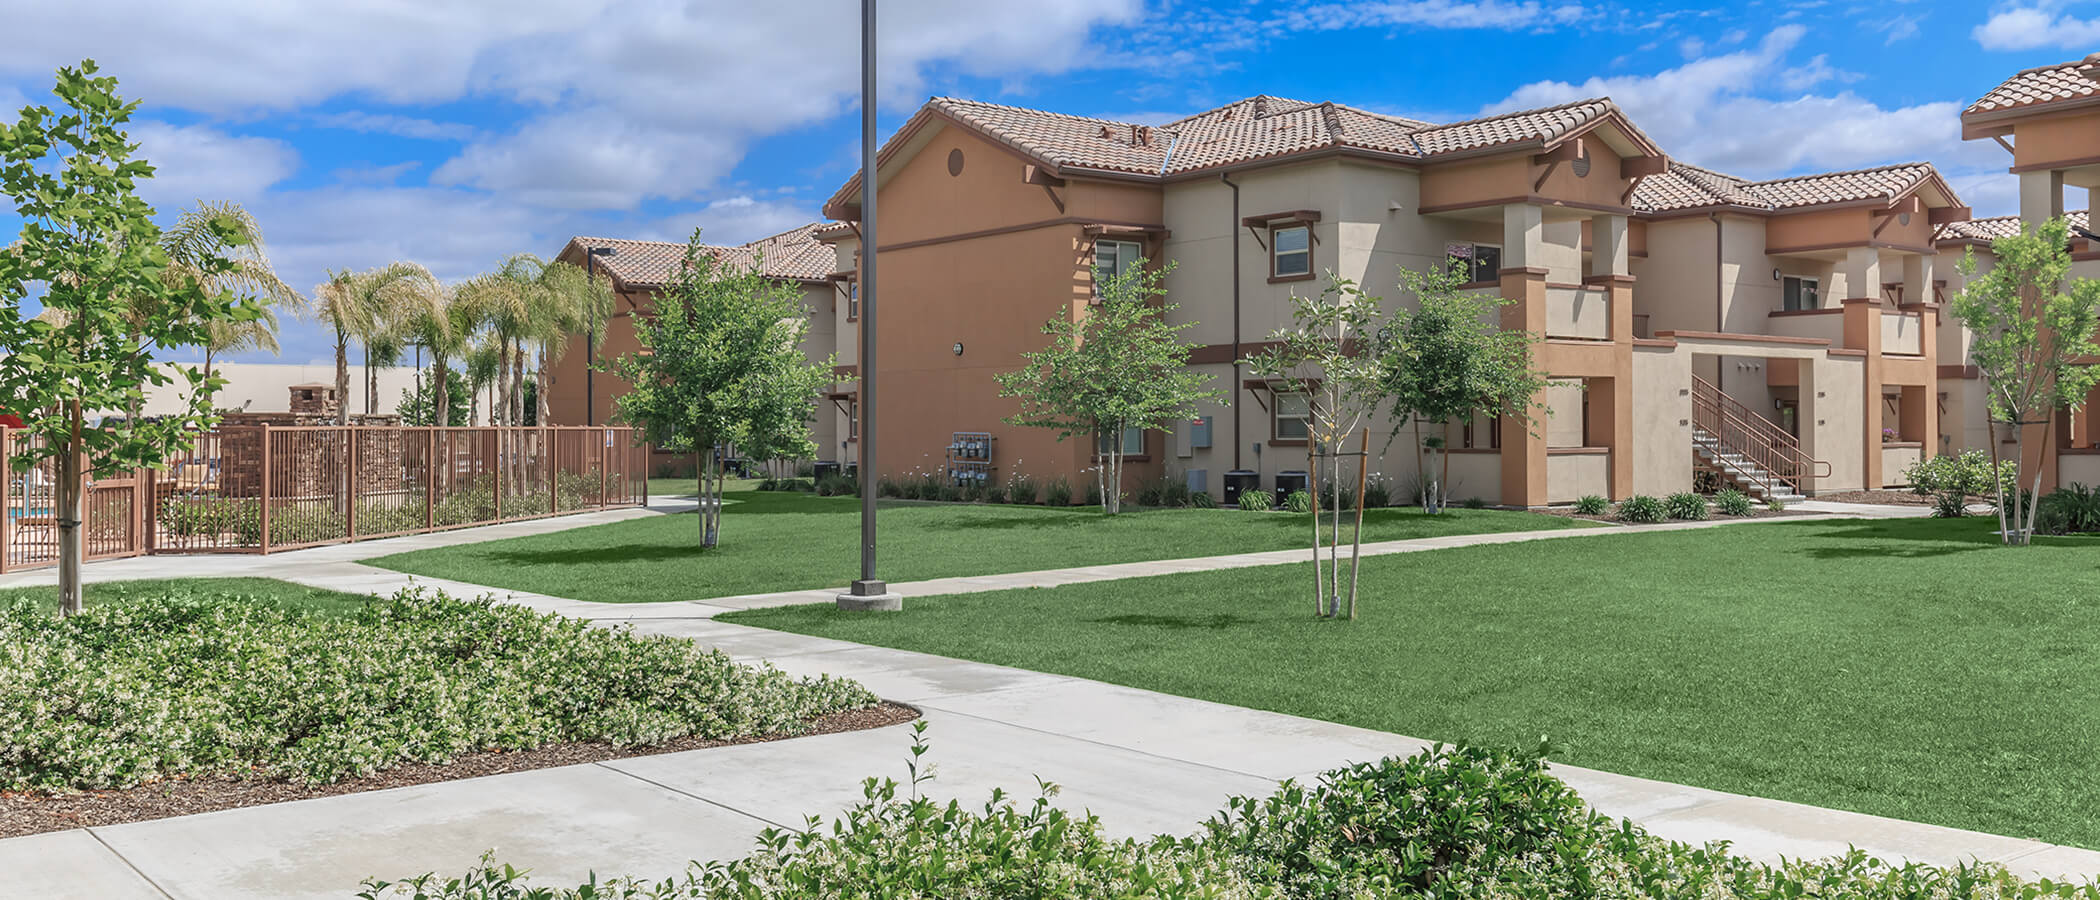 watermark apartments in bakersfield ca